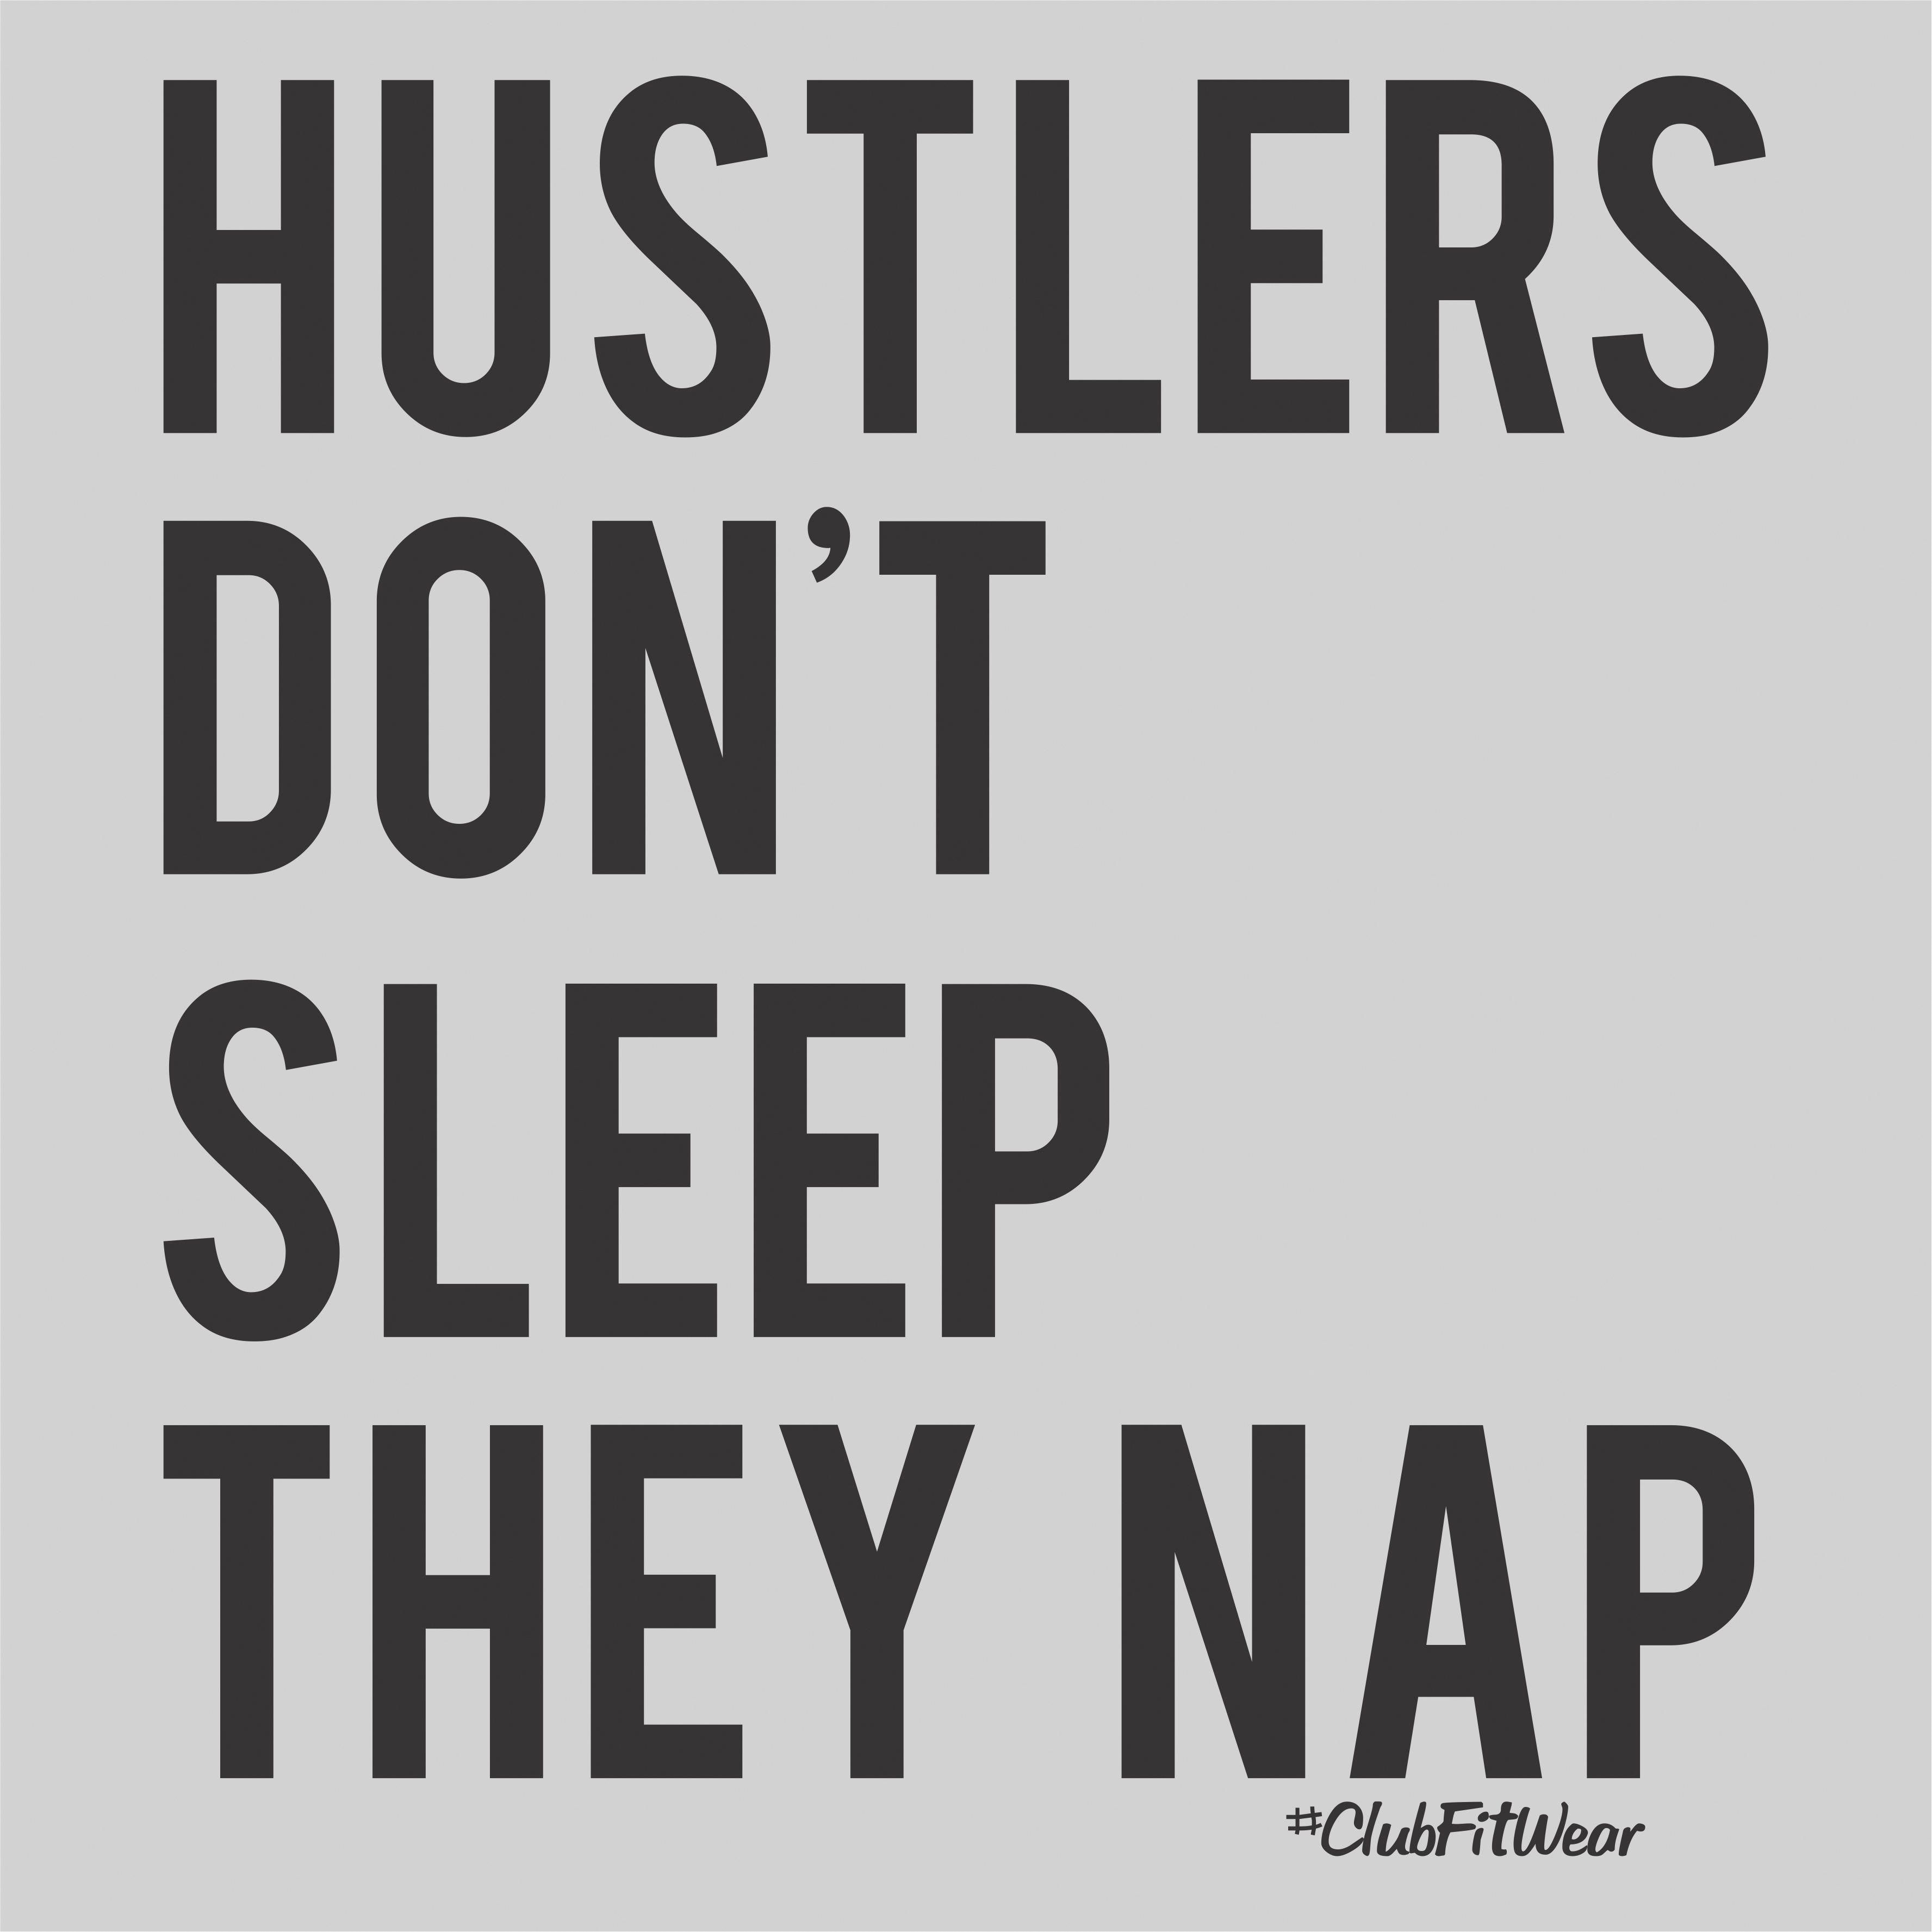 Pin by Karen Nduati on 2pac quotes | Hustle quotes ...